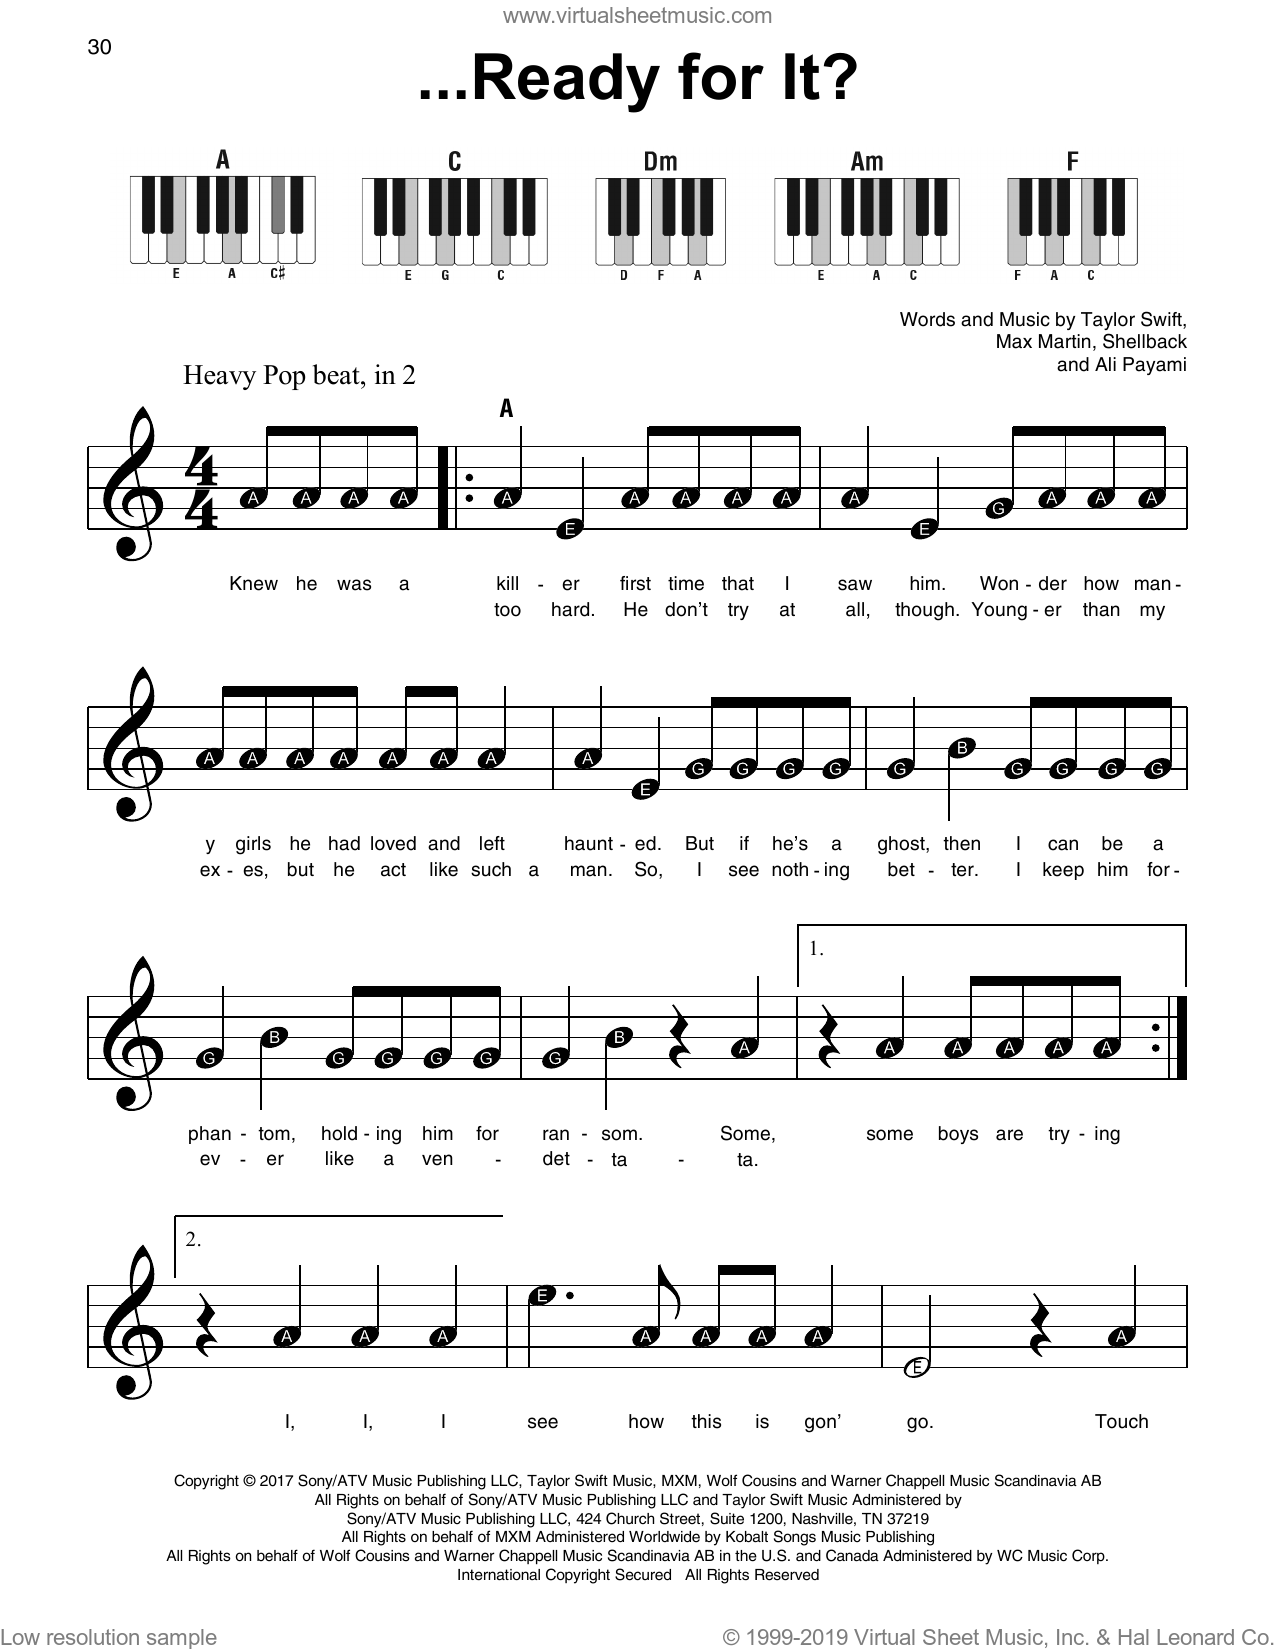 ...Ready For It? sheet music for piano solo by Taylor Swift, Ali Payami, Max Martin and Shellback, beginner skill level